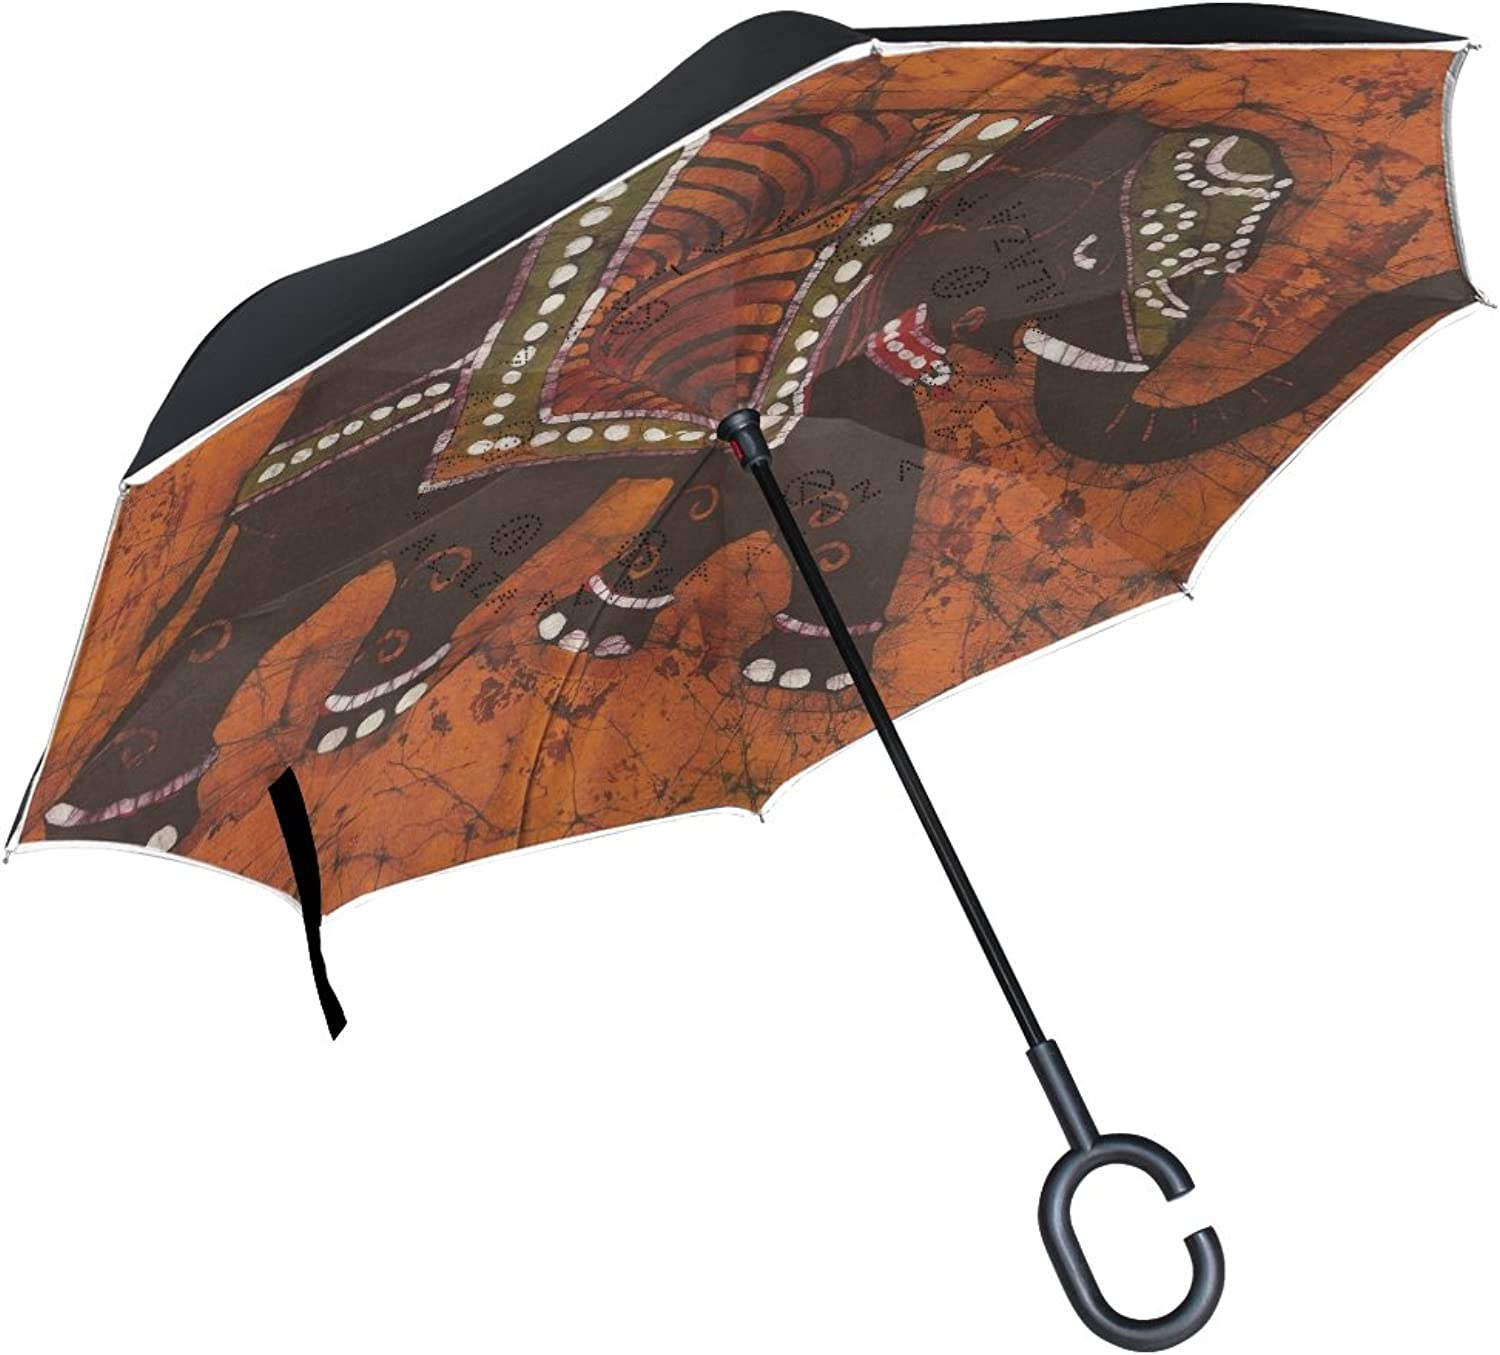 MASSIKOA Indian Decorated Elephant Ingreened Double Layer Straight Umbrellas Inside-Out Reversible Umbrella with C-Shaped Handle for Rain Sun Car Use